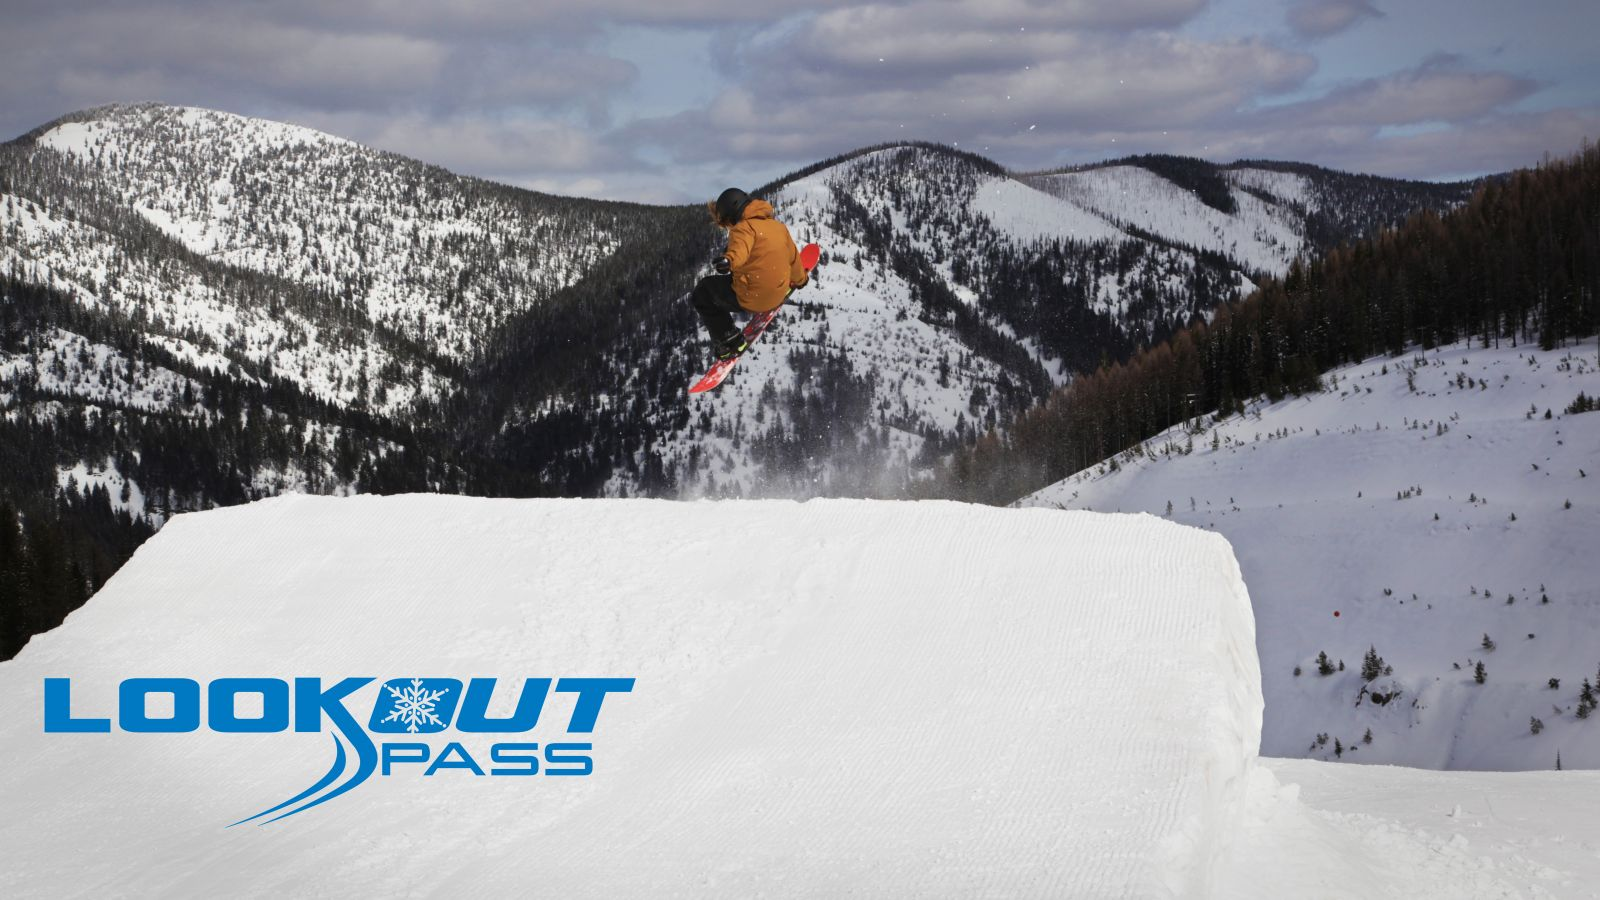 Craig jumping at Lookout Pass in the Terrain Parks